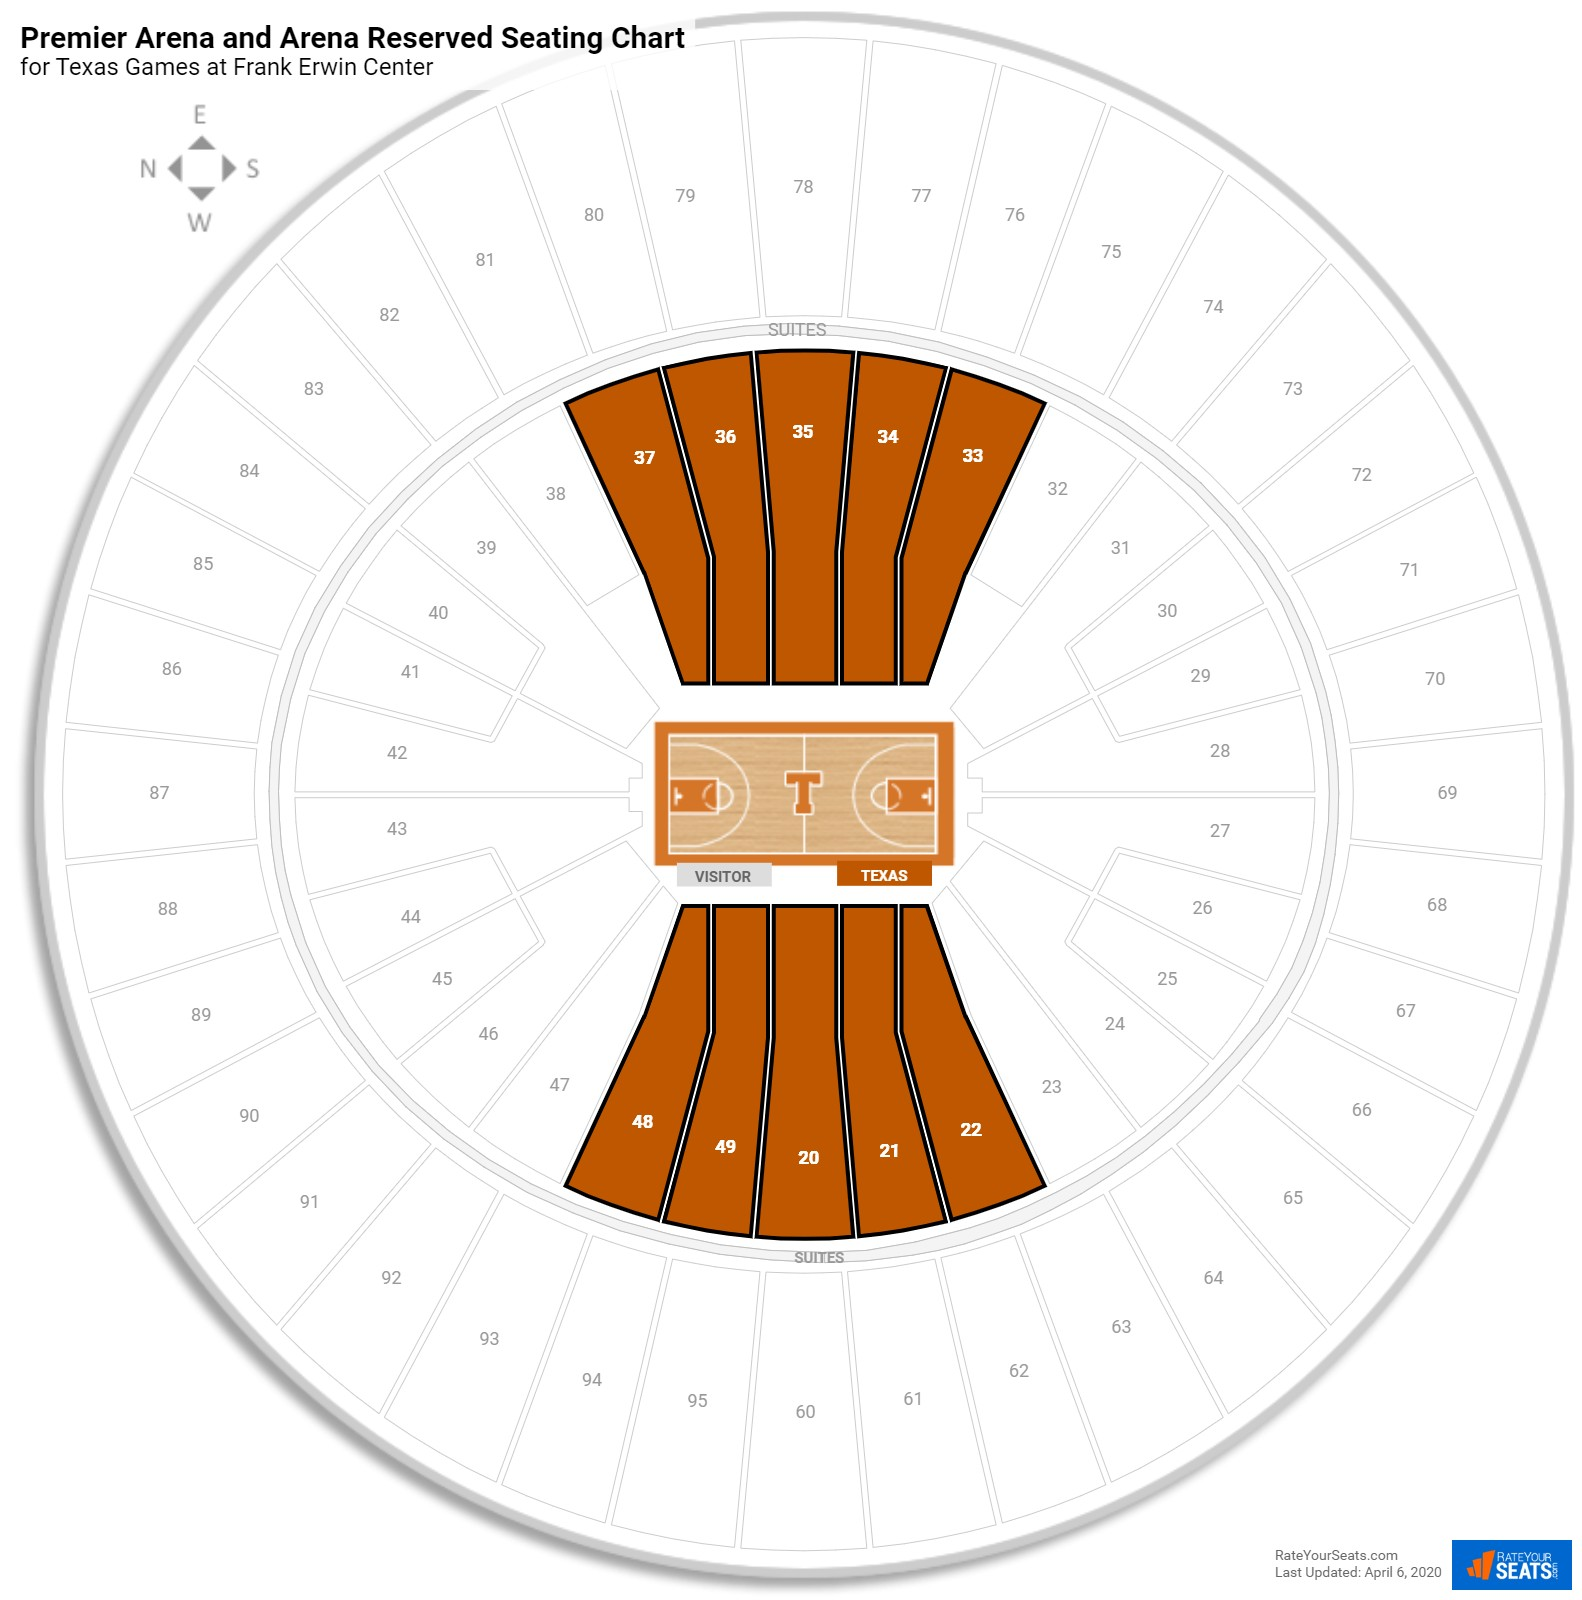 Frank Erwin Center Arena Level Center seating chart